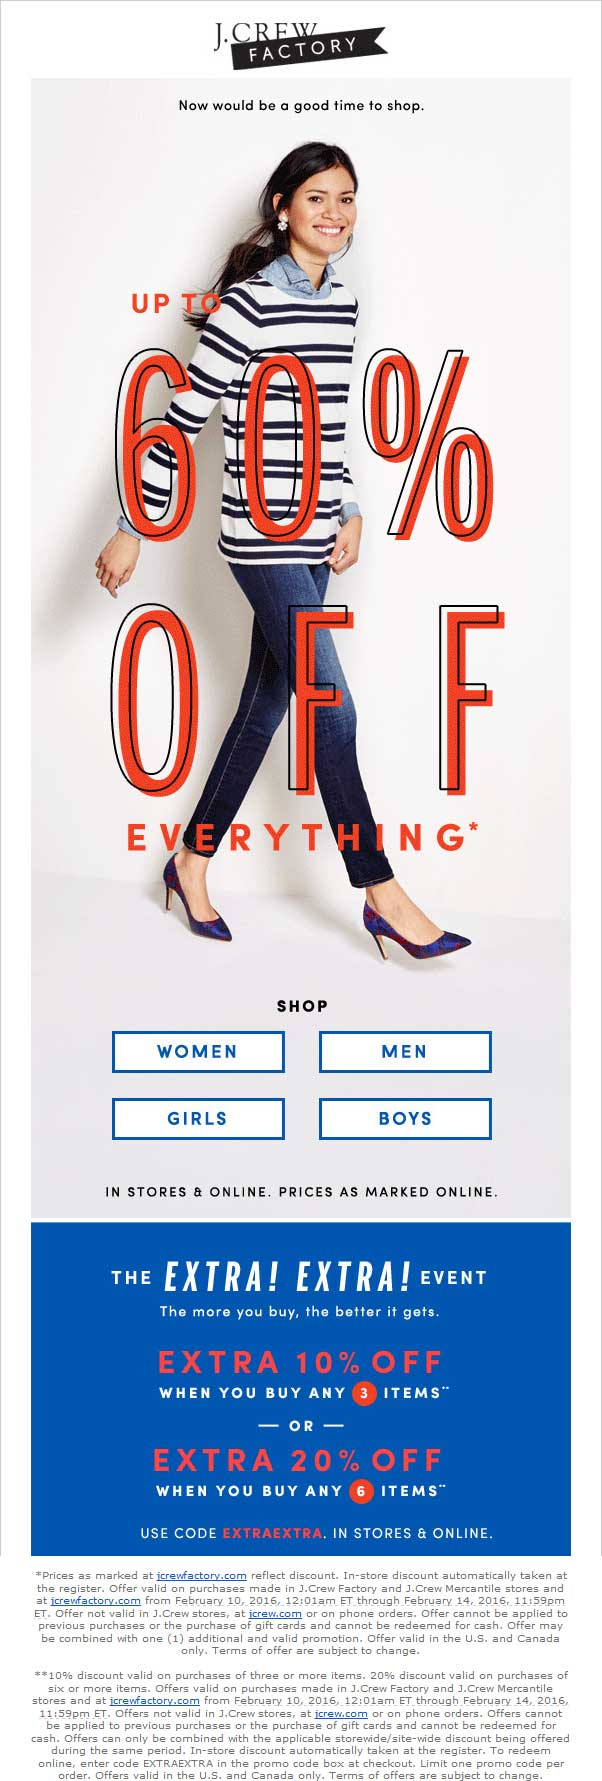 J.Crew Factory Coupon July 2017 Extra 20-60% off everything at J.Crew Factory, or online via promo code EXTRAEXTRA